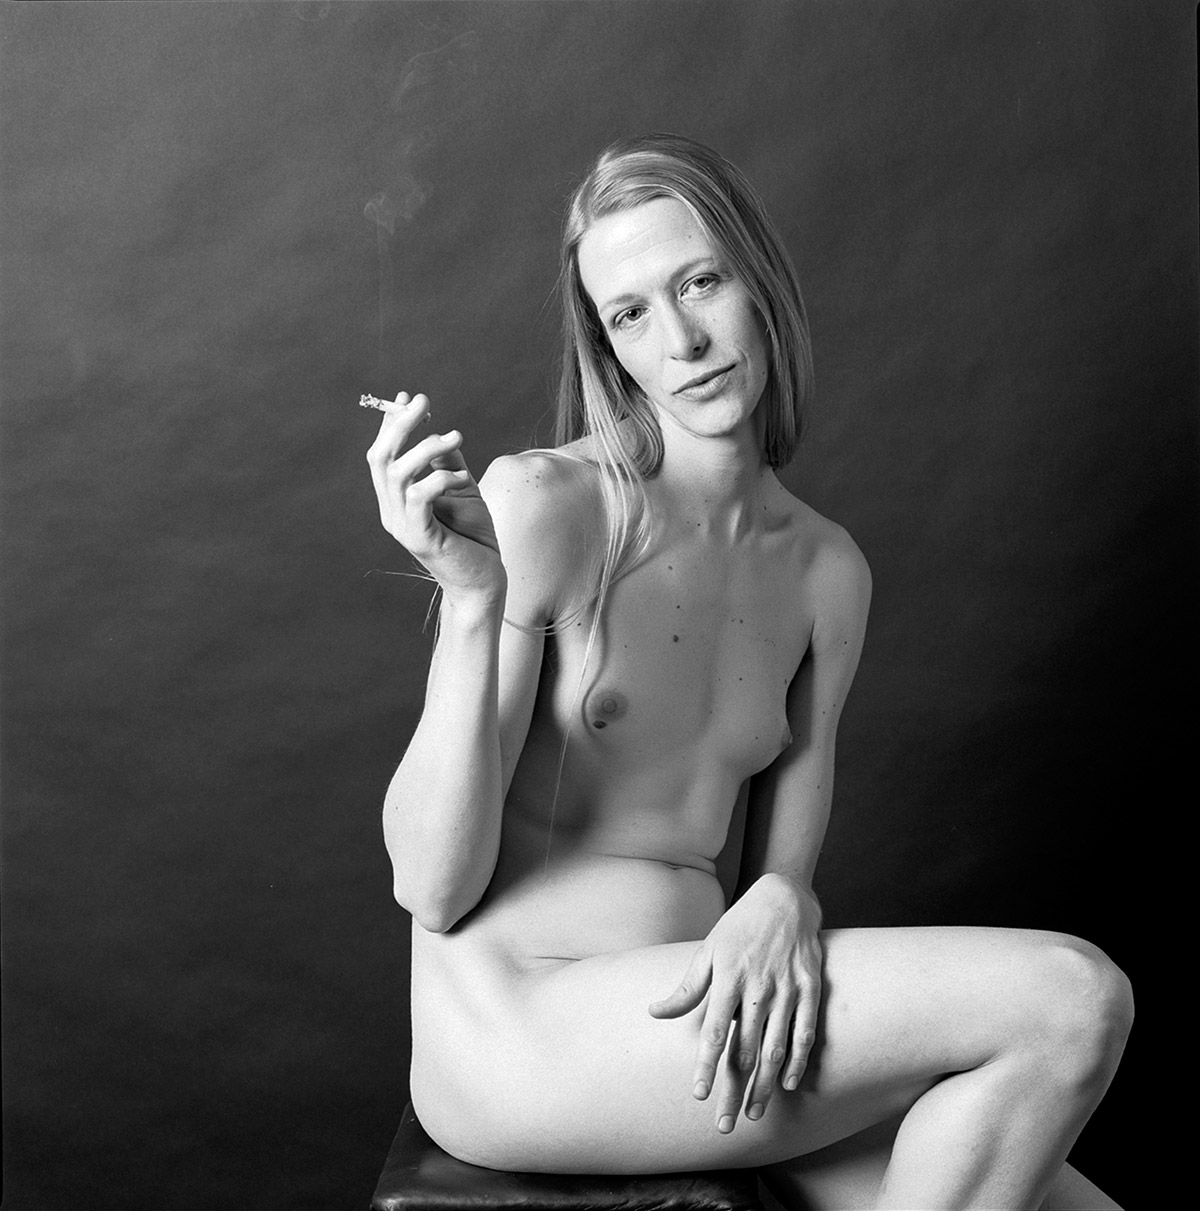 Photo Kate Simons Portraits Of Cultural LGBTQ+ figures from the 70s To the Present